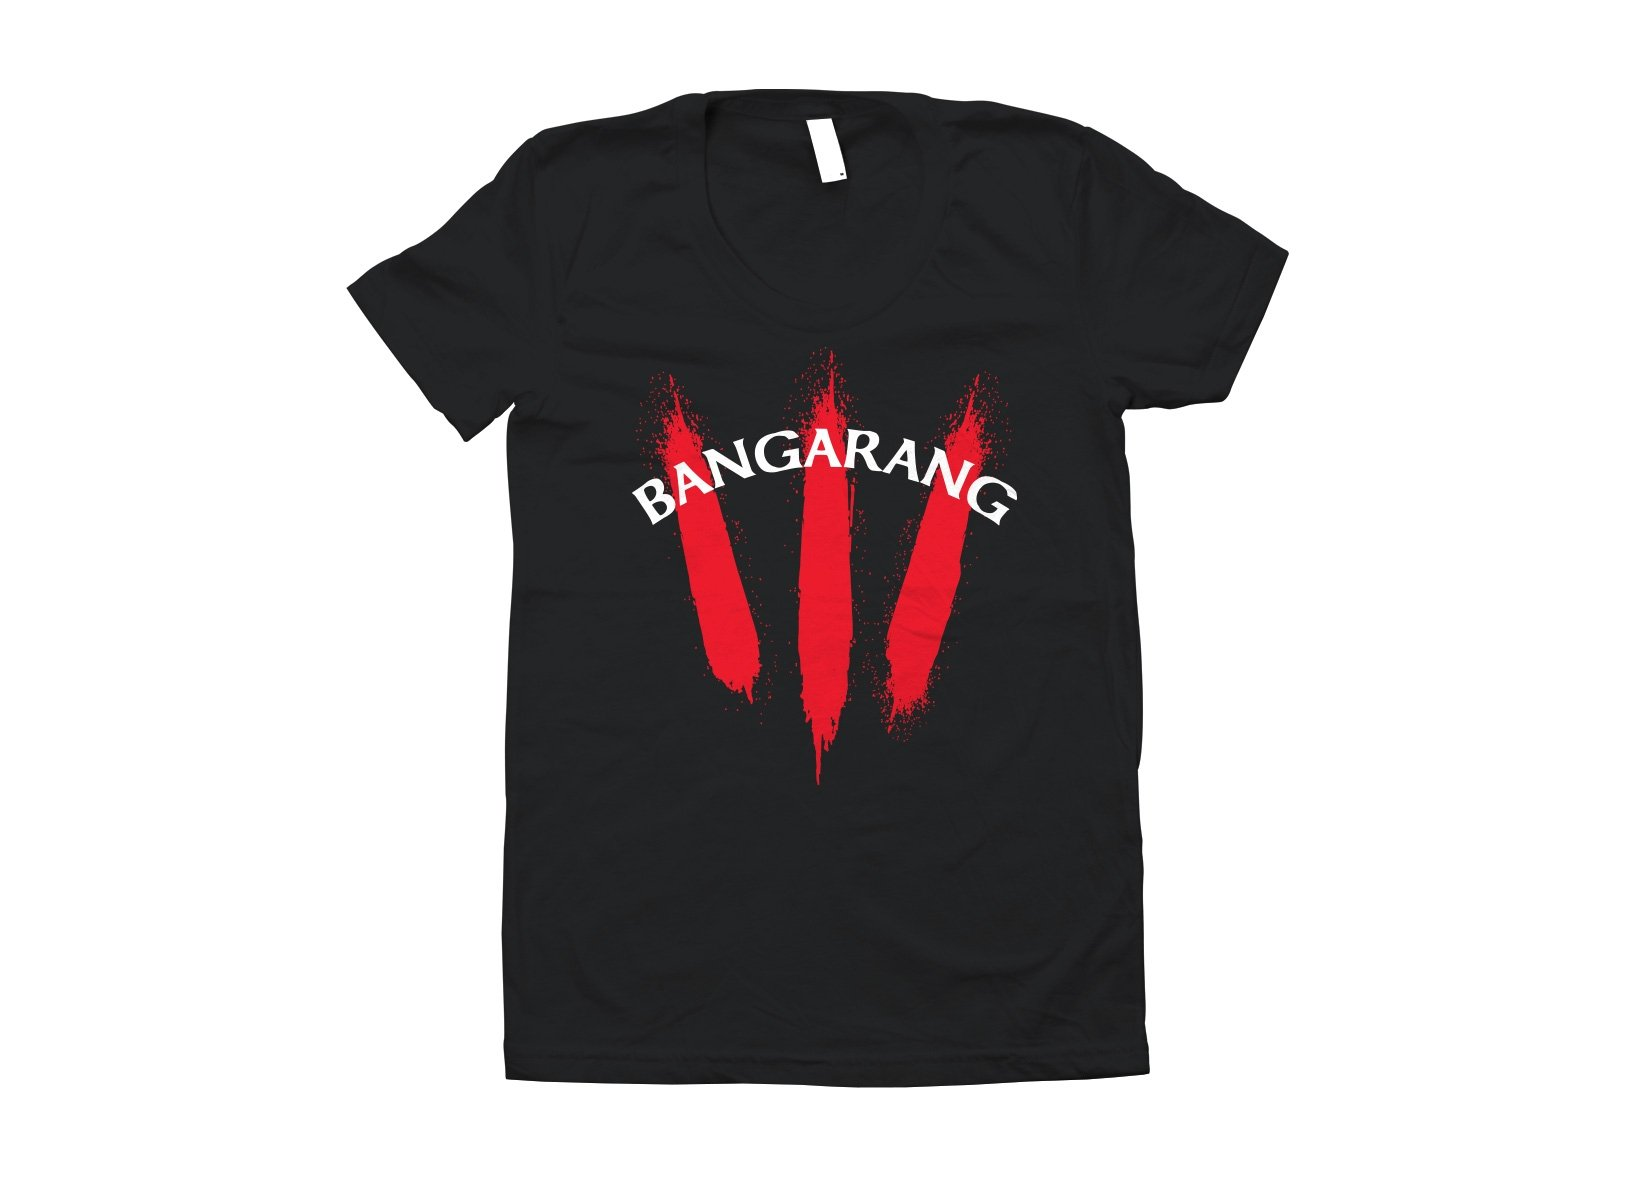 Bangarang on Juniors T-Shirt